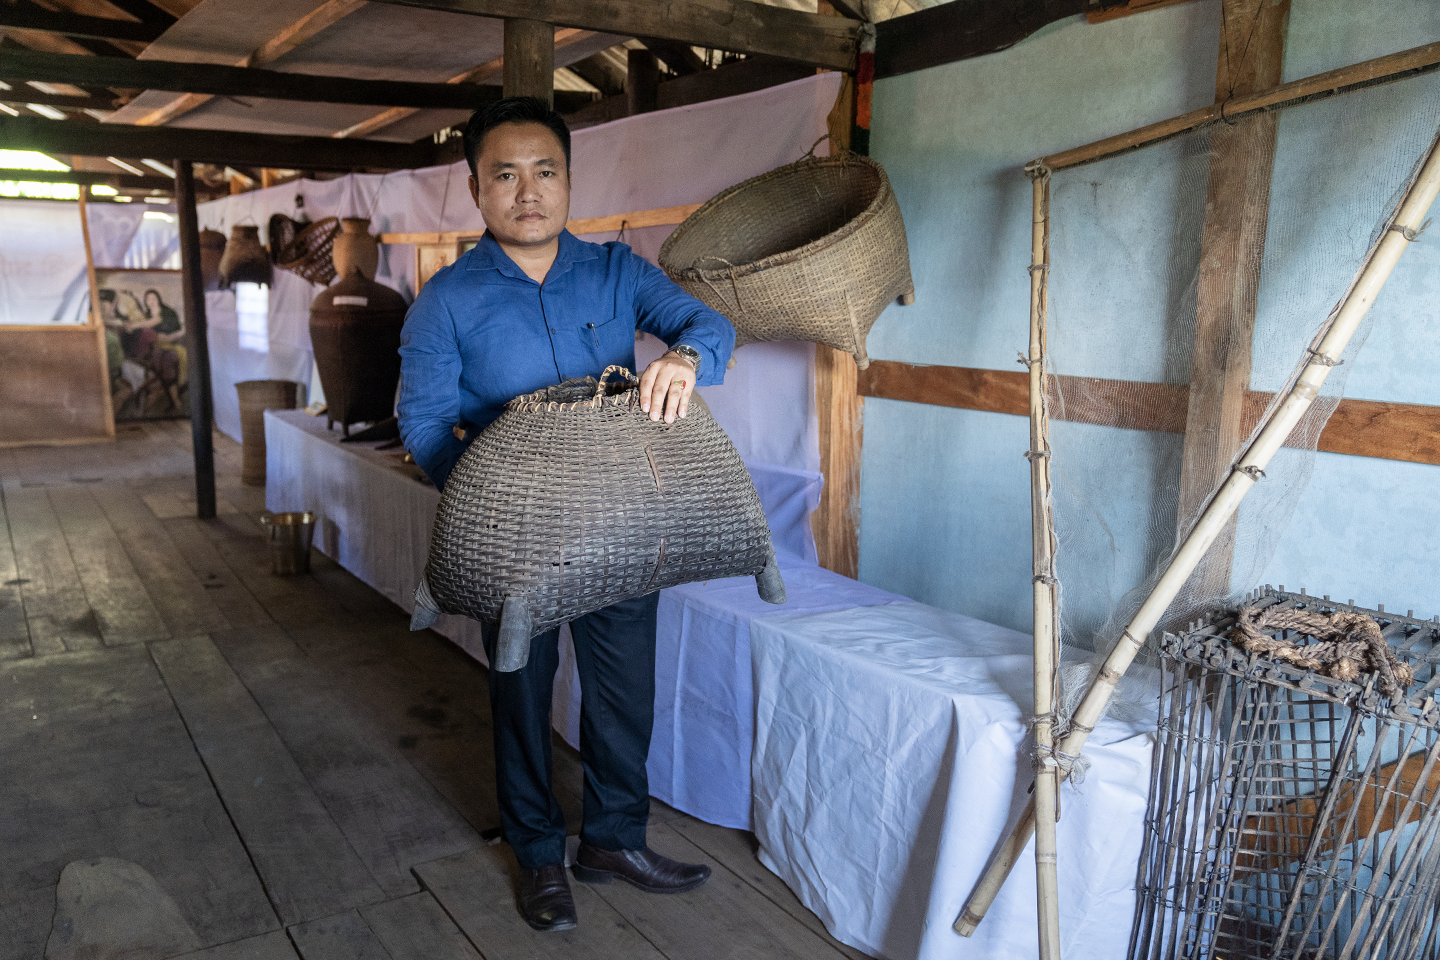 Tongbram Amarjit founded the Loktak Folklore Museum in 2016 to preserve the traditional fishing practices of his community. Photo credit: Kartik Chandramouli